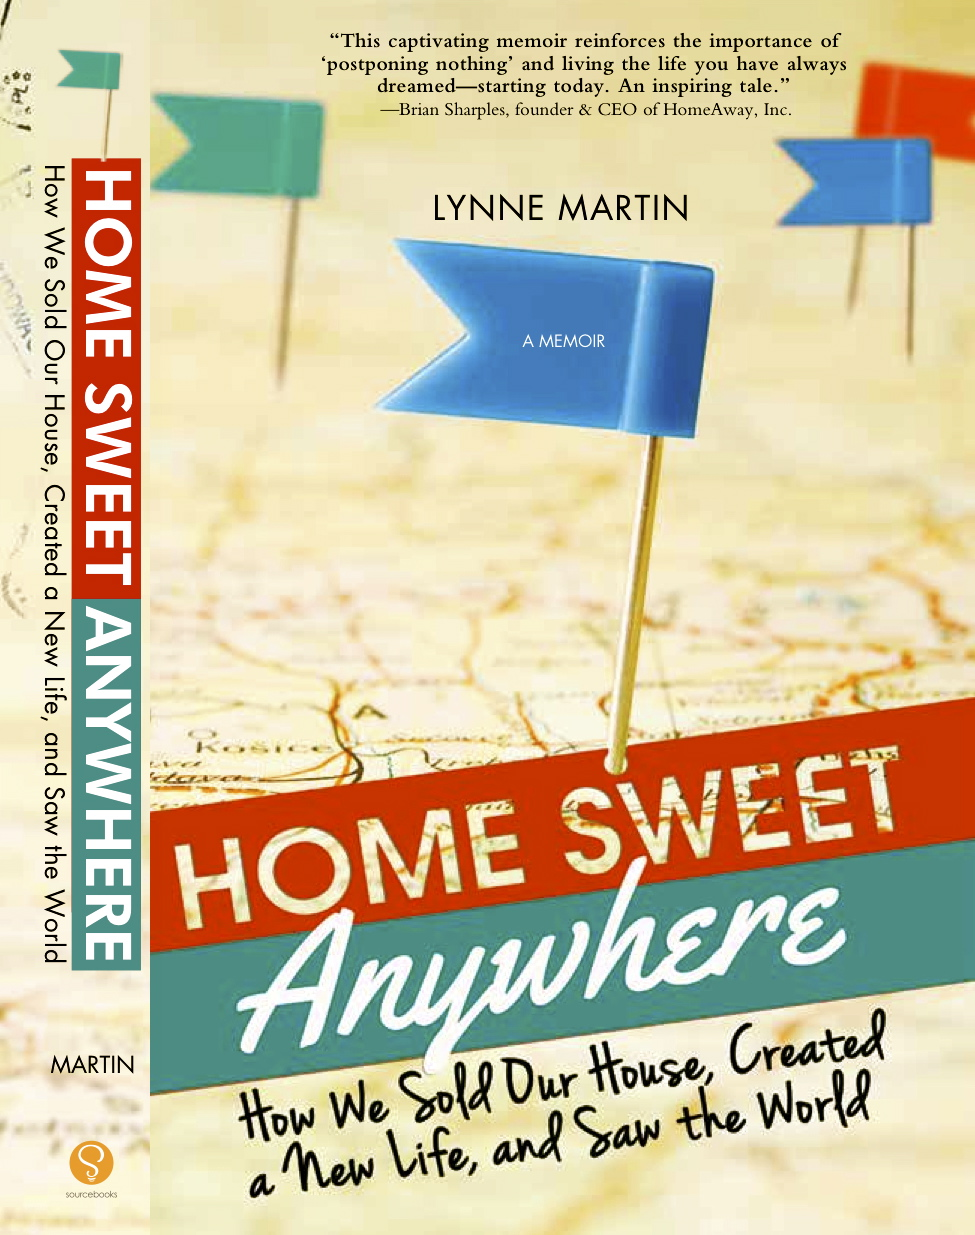 Book reviews: Home Sweet Anywhere